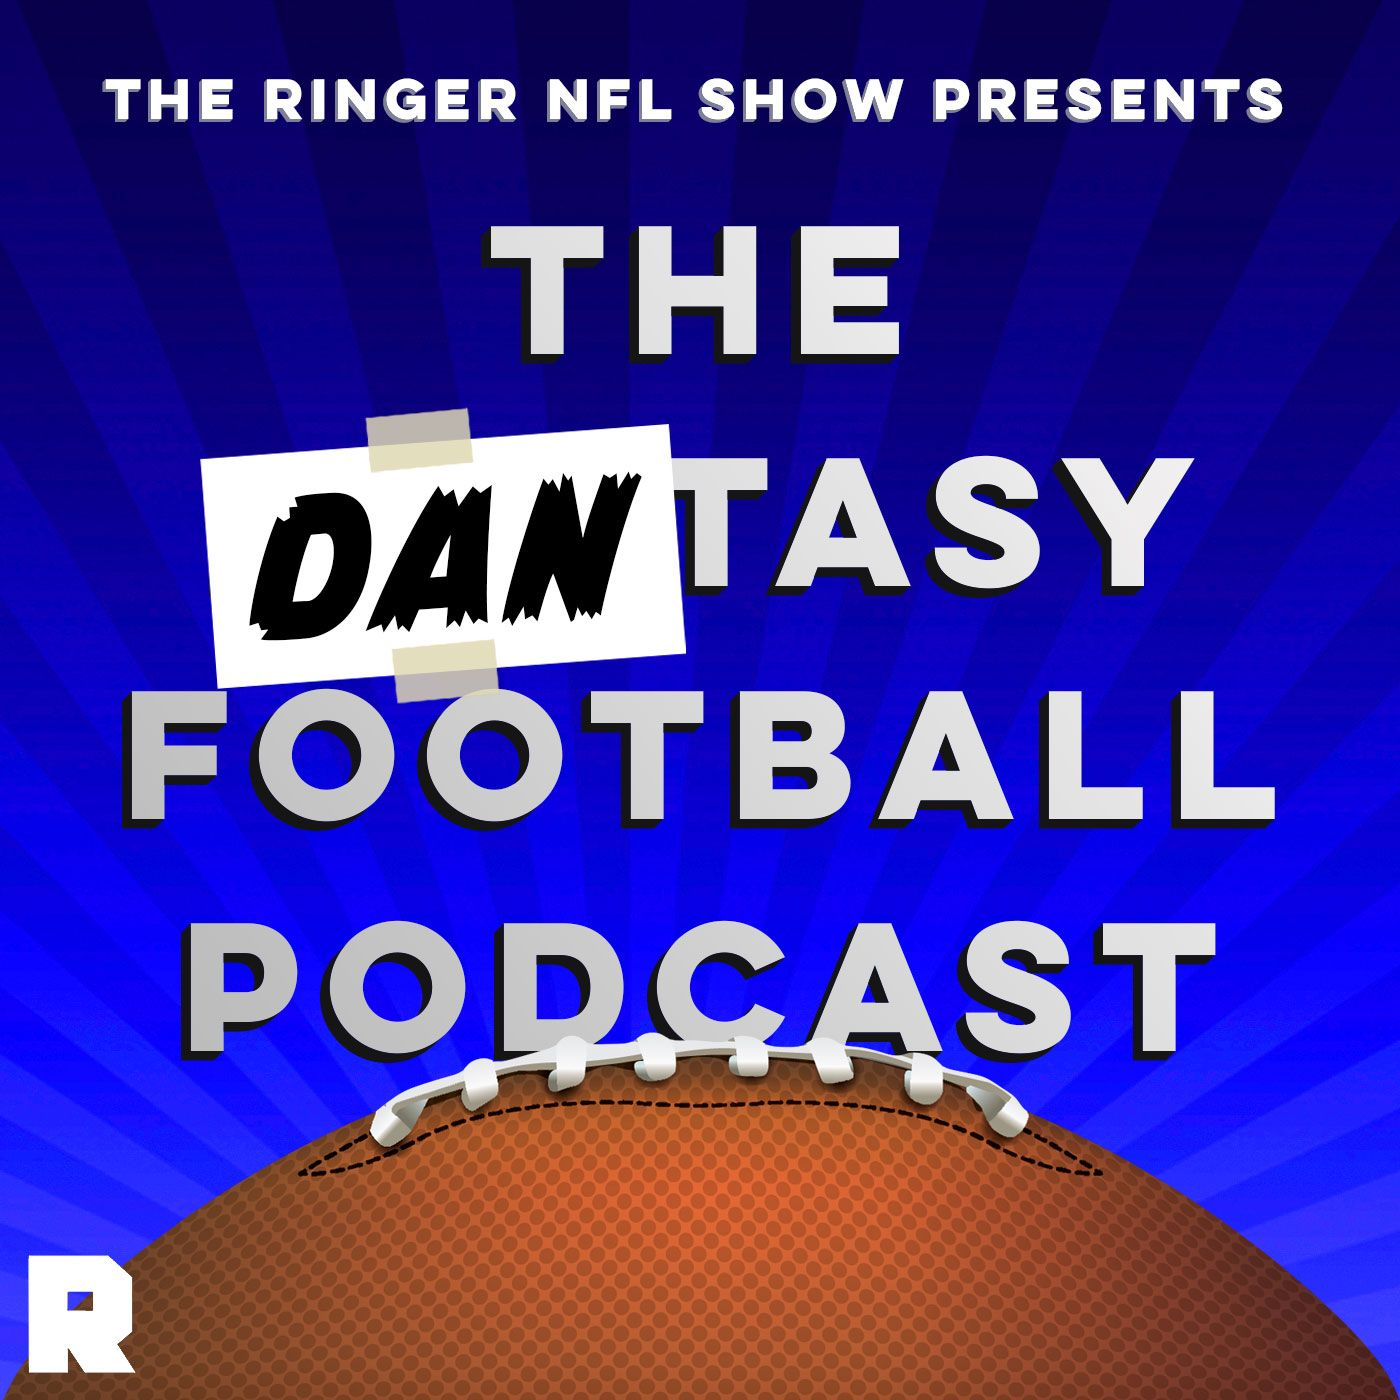 15 Players You Need to Draft This Year | The Dantasy Football Podcast